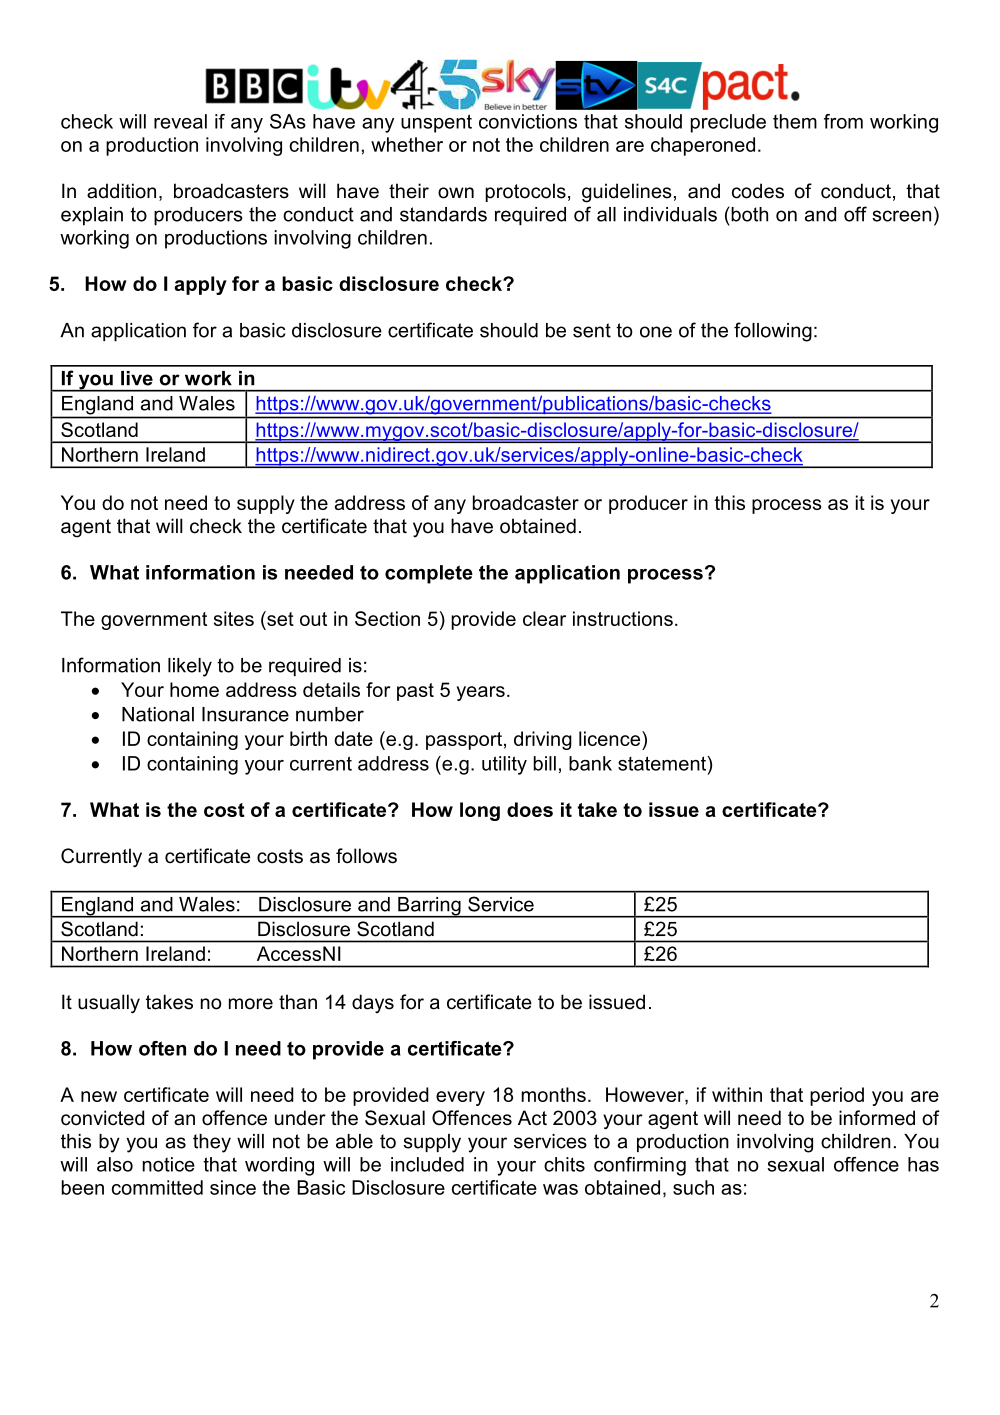 3) General DBS FAQ - SA background checks 18 june 2018 final verson-2.png